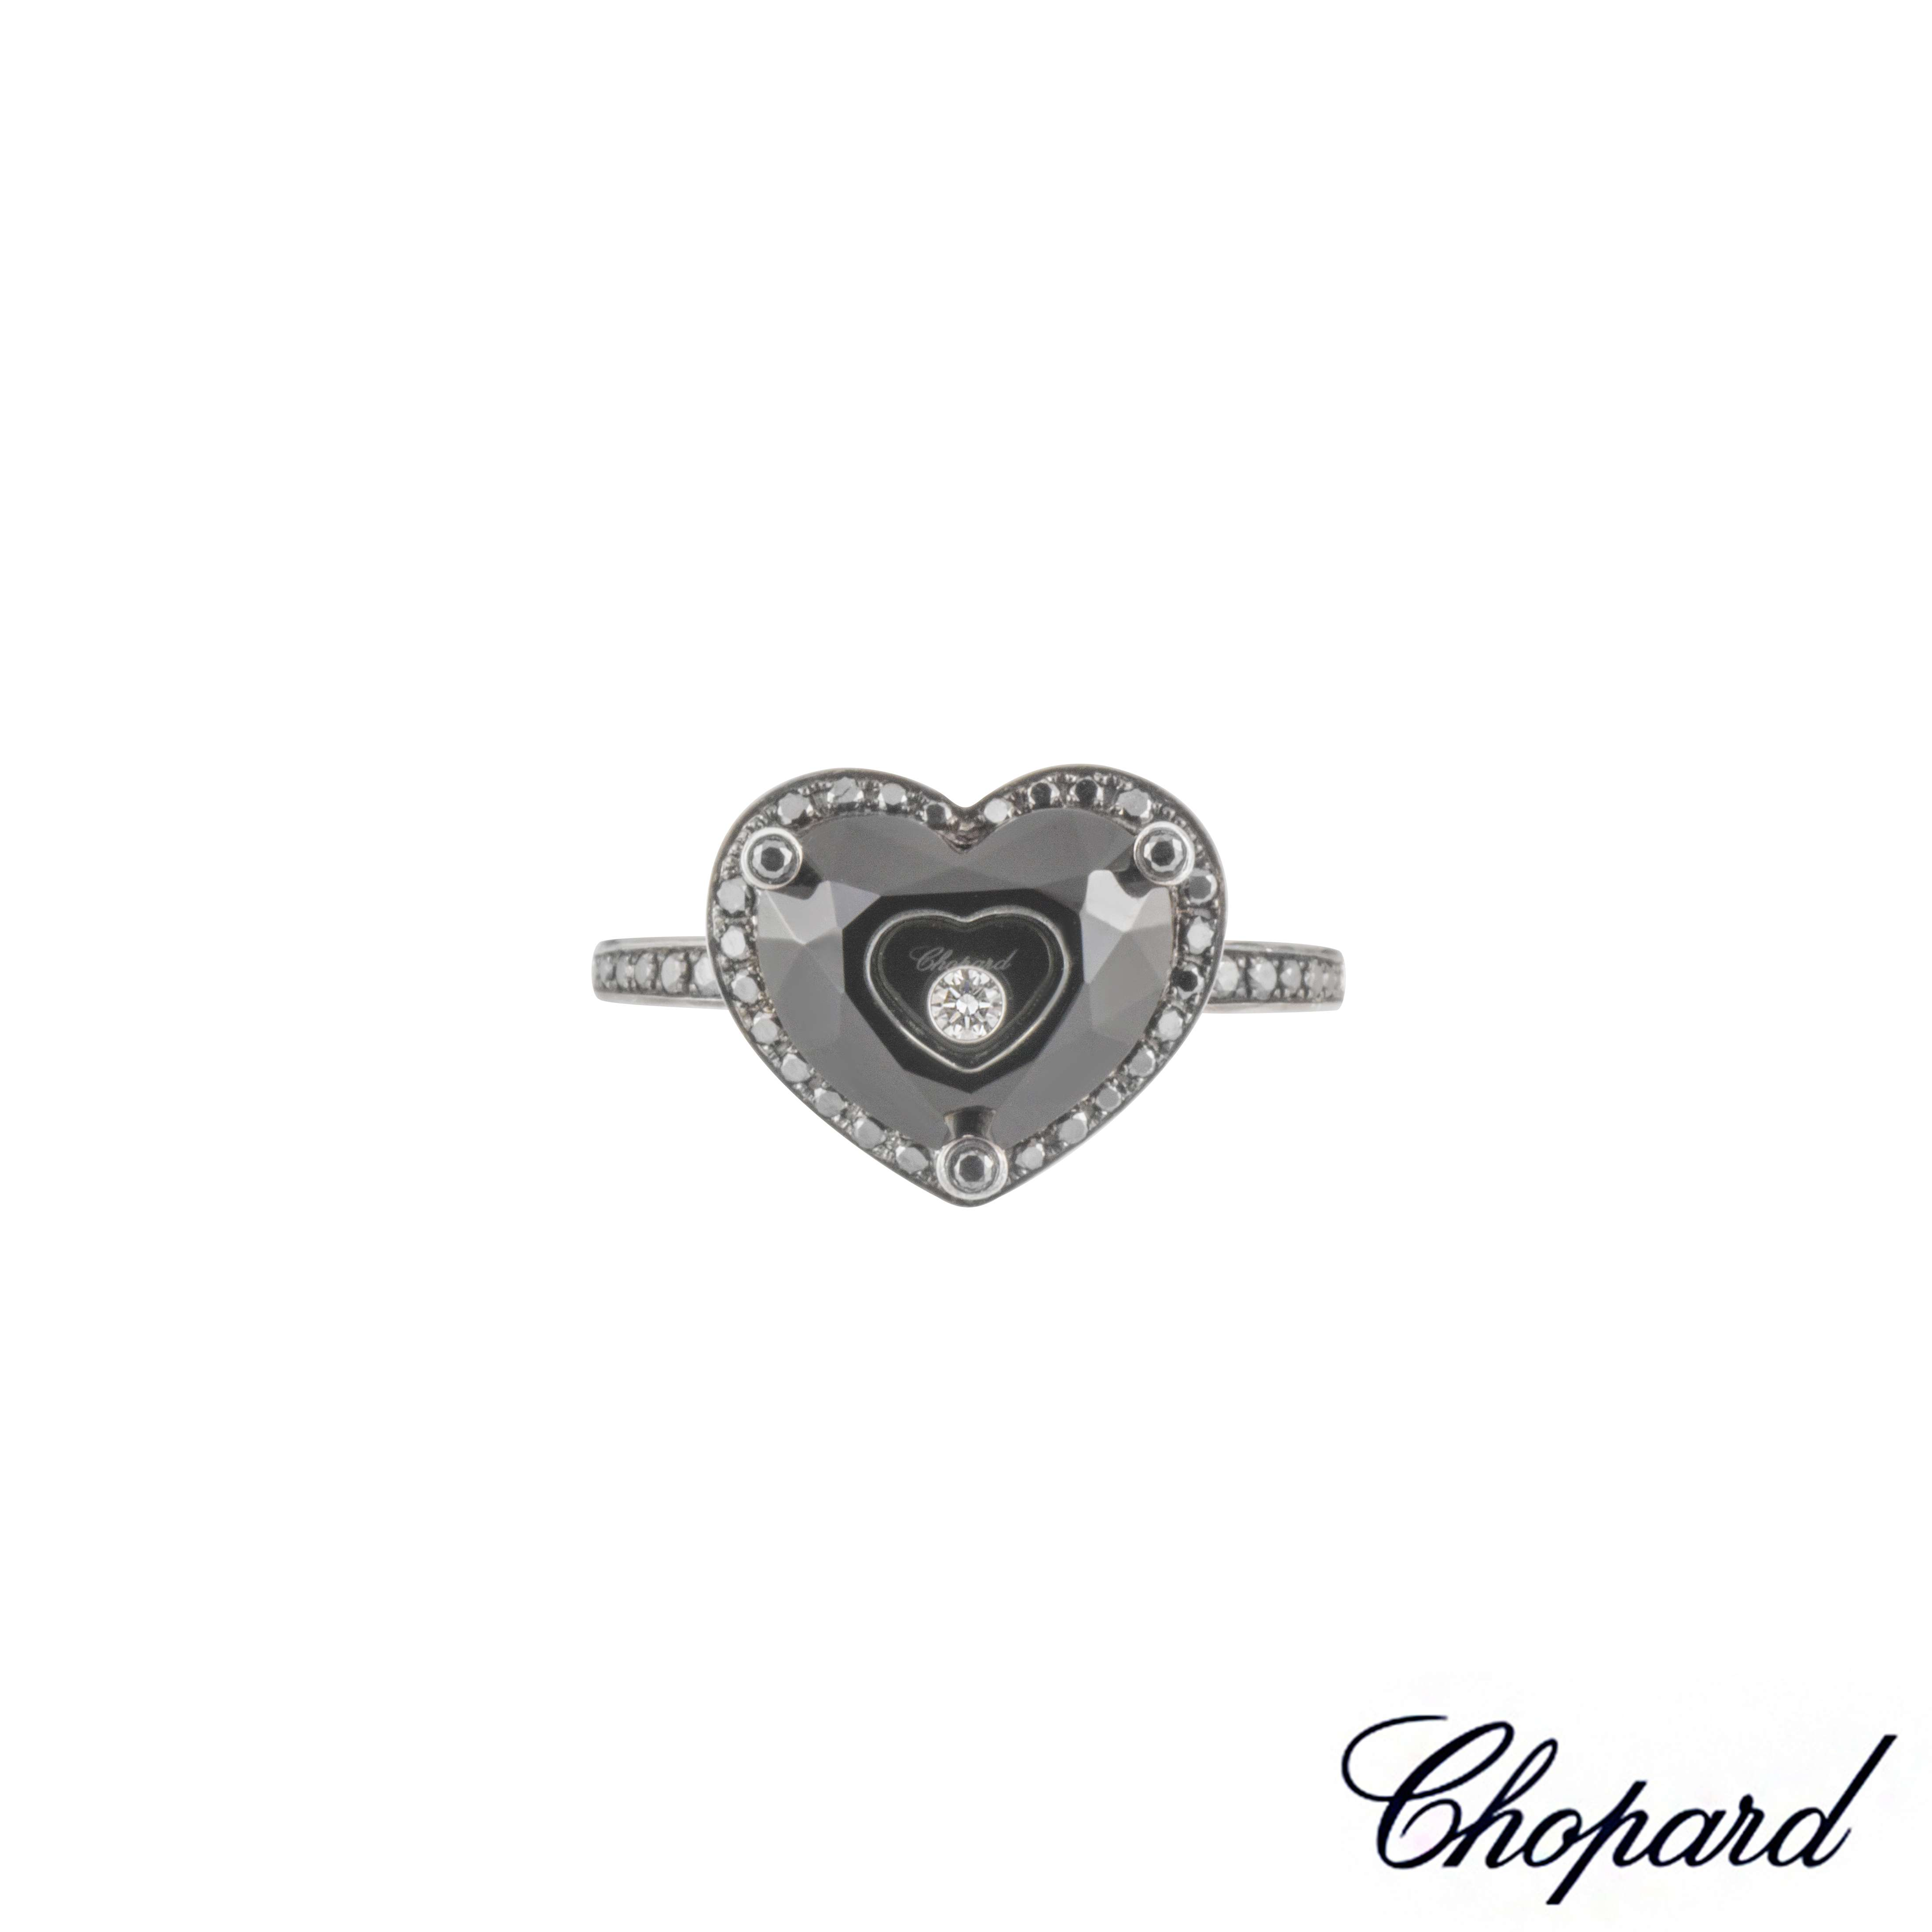 Chopard 18k White Gold Diamond and Onyx So Happy Diamond Ring Size 52 826122-1736